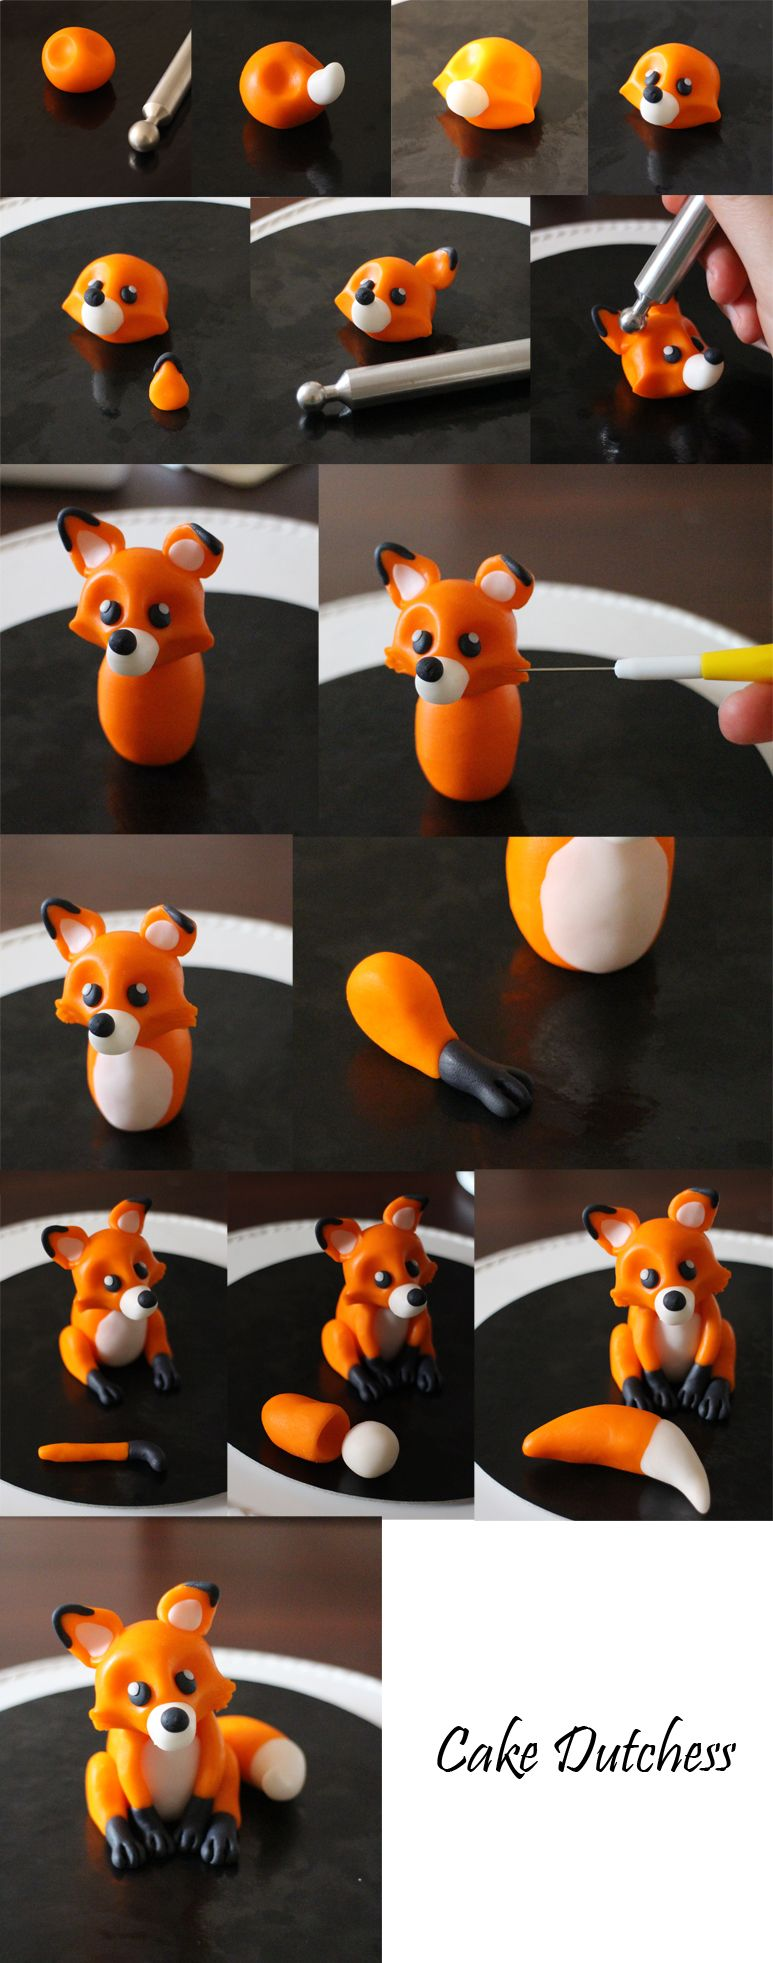 If you like this step by step, please like my page aswell